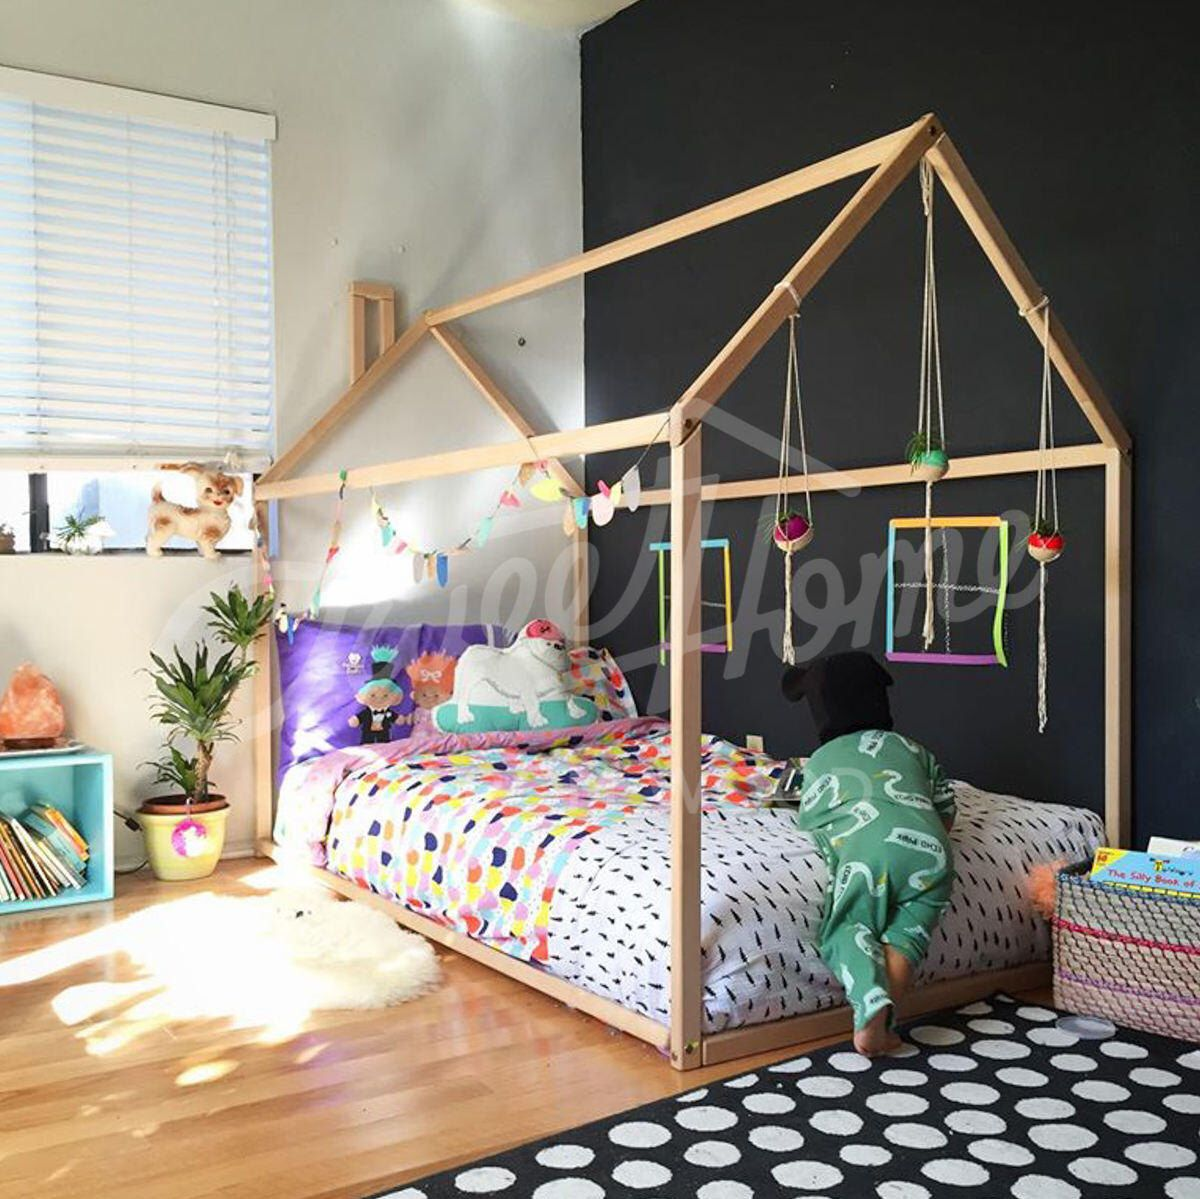 House Bed Frame Uk Toddler Bed House Bed Children Bed Wooden House Tent Bed Wood